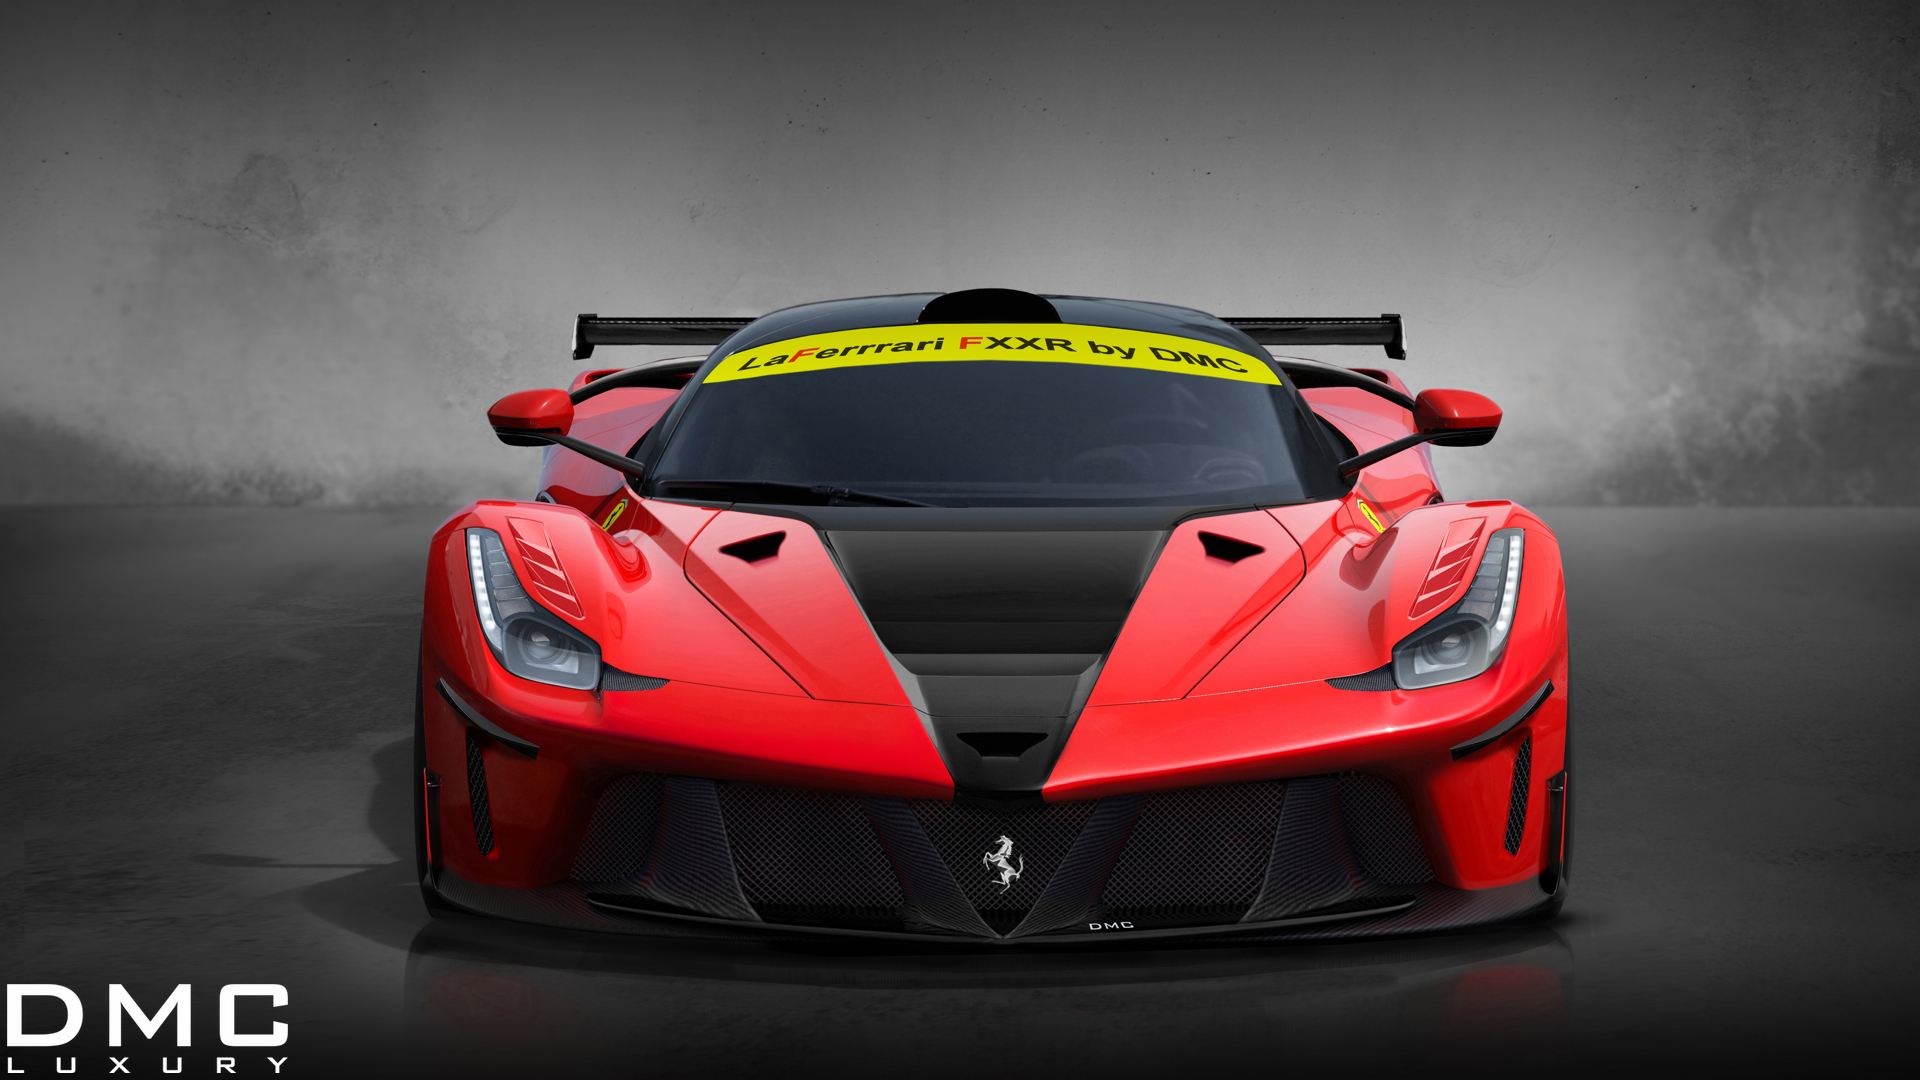 Dmc Transforms The Laferrari Into The Laferrari Fxxr